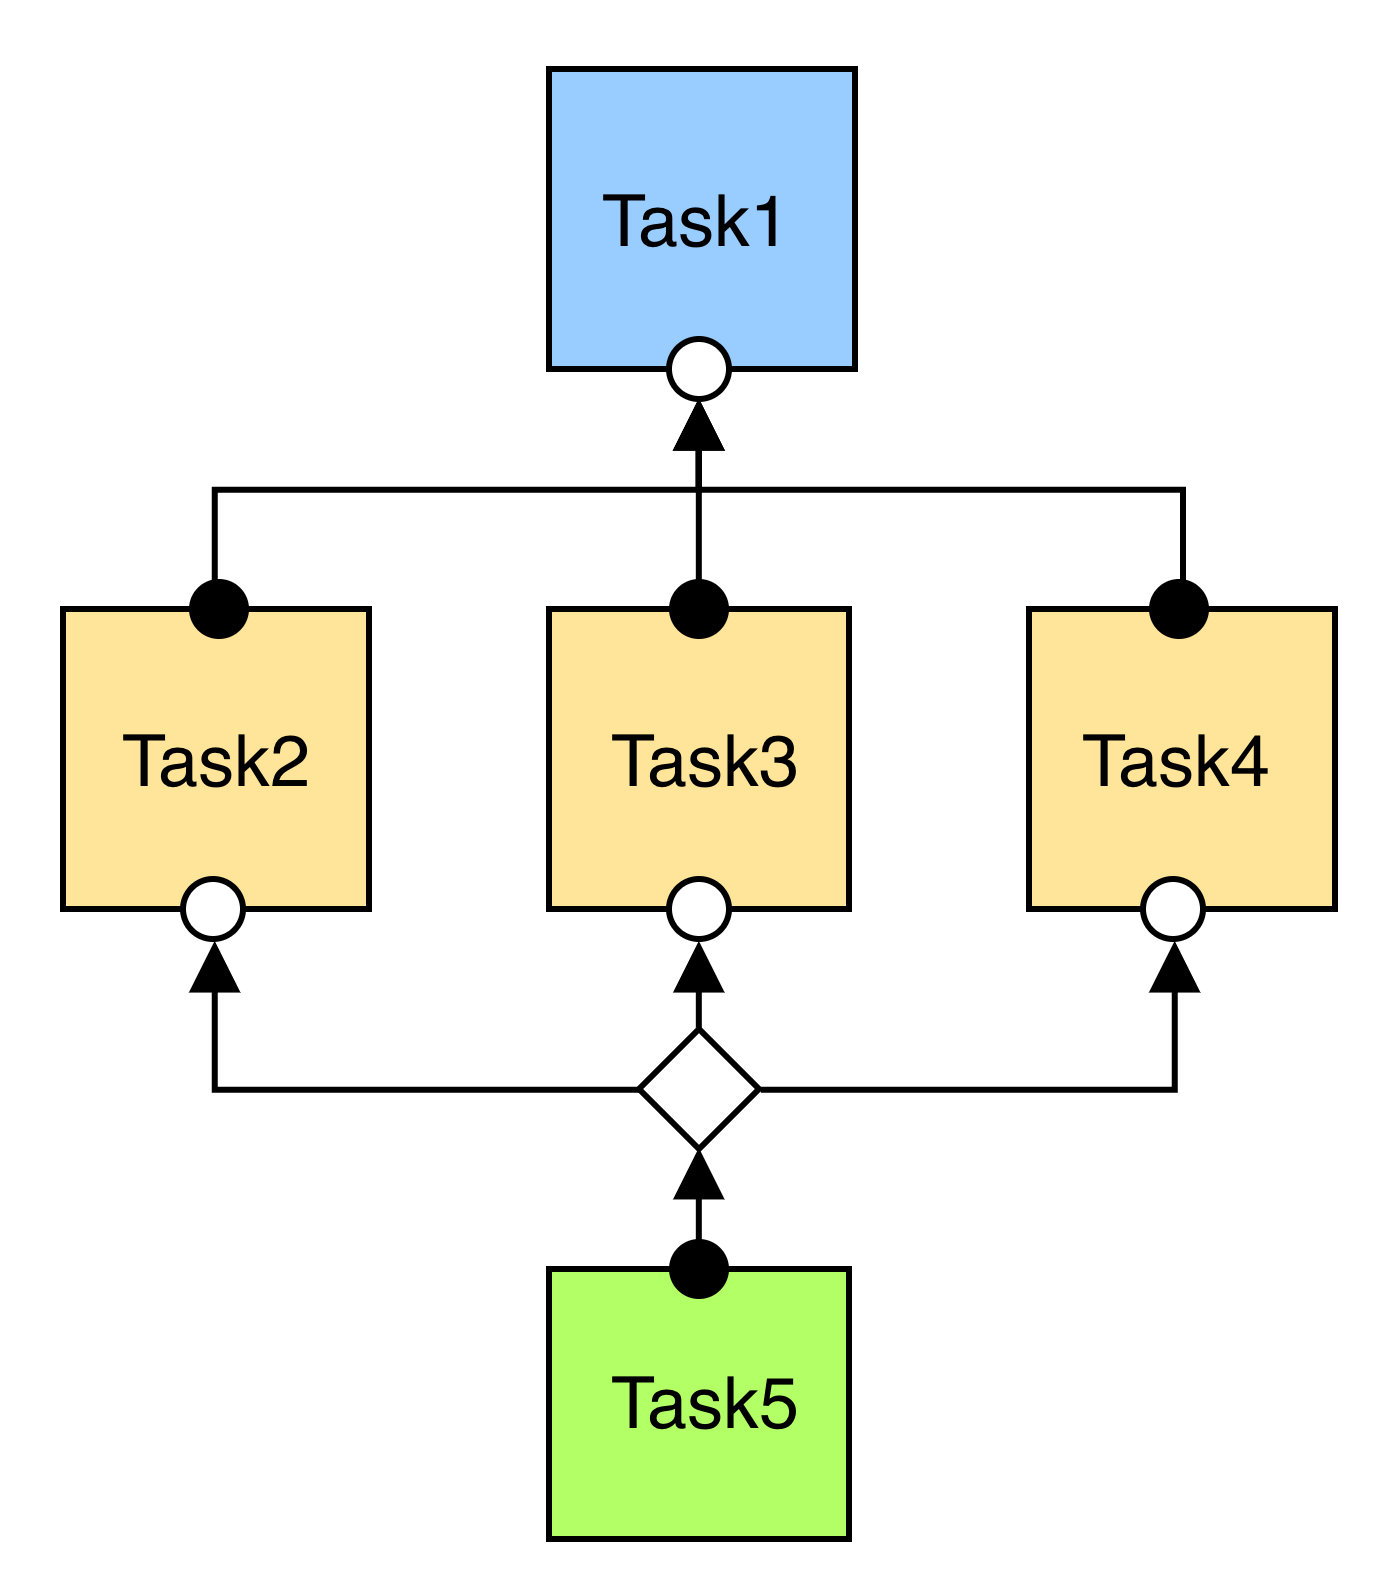 Concurrency And Parallelism Understanding I O Risingstack Makes Perfect Certainly Ap Plies To Reading Schematic Diagrams Cuncurrency Paralellism Diagram Of Tasks With Dependencies